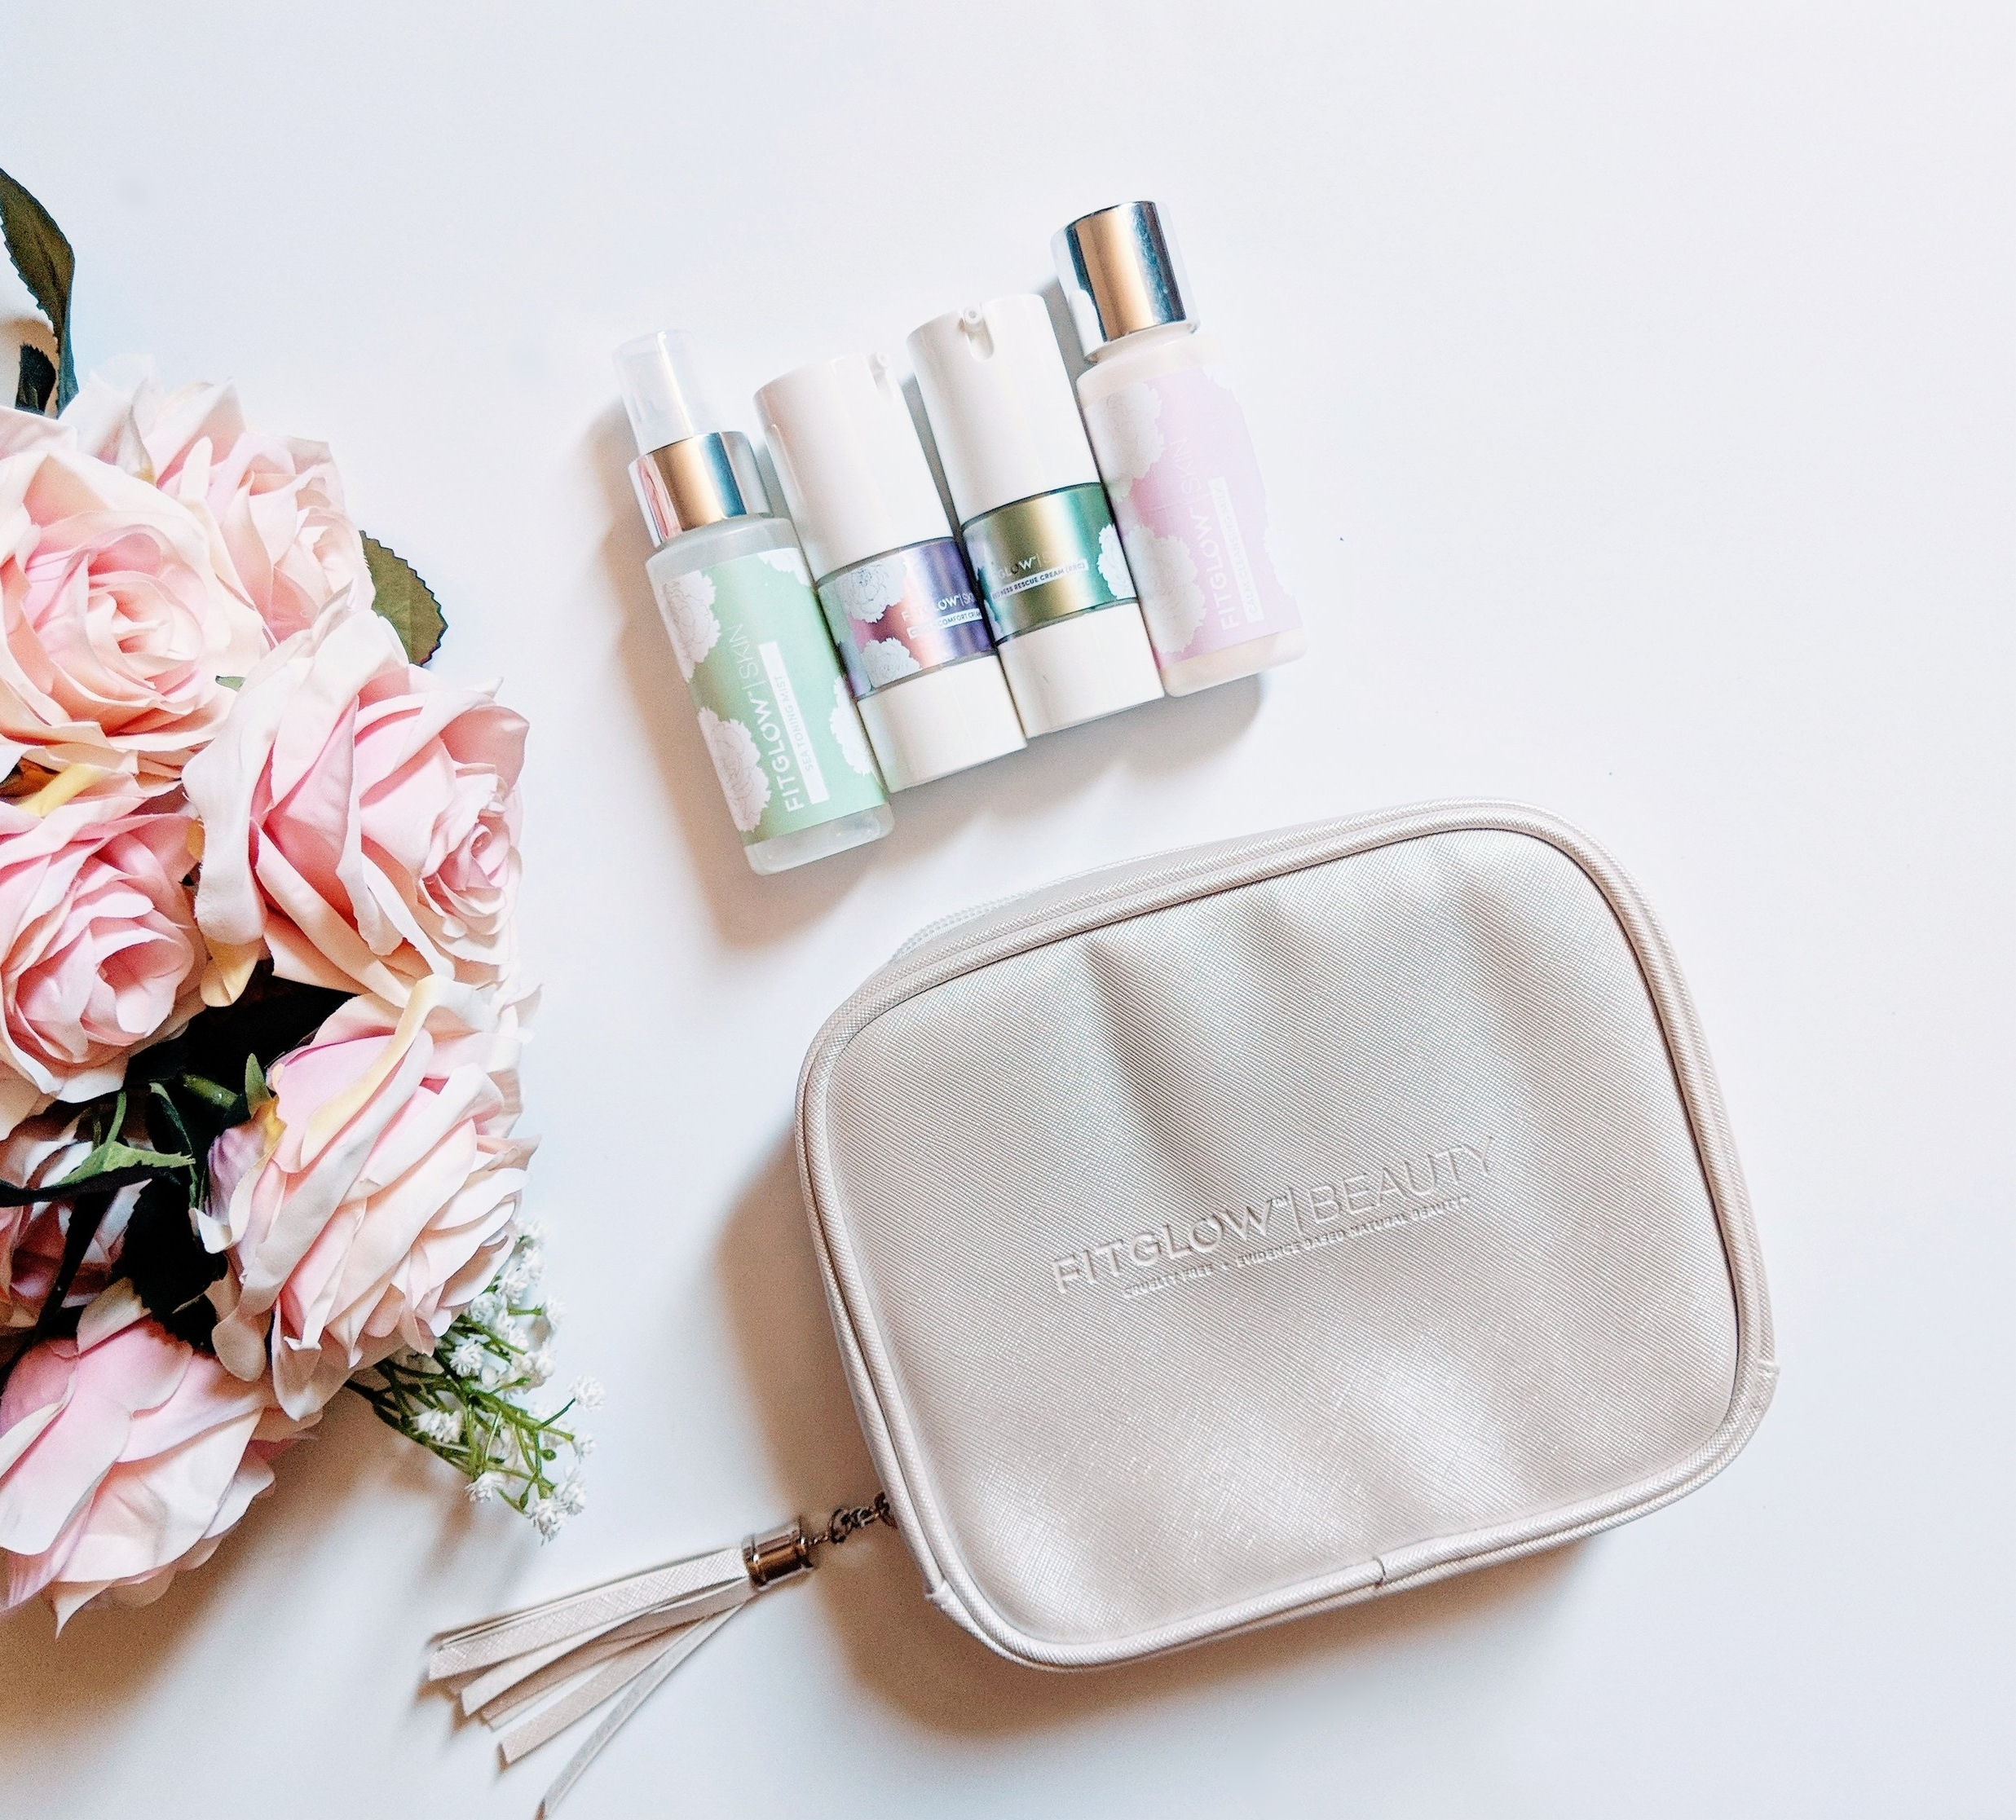 The Fitglow Calm Skincare Line - Travel kit